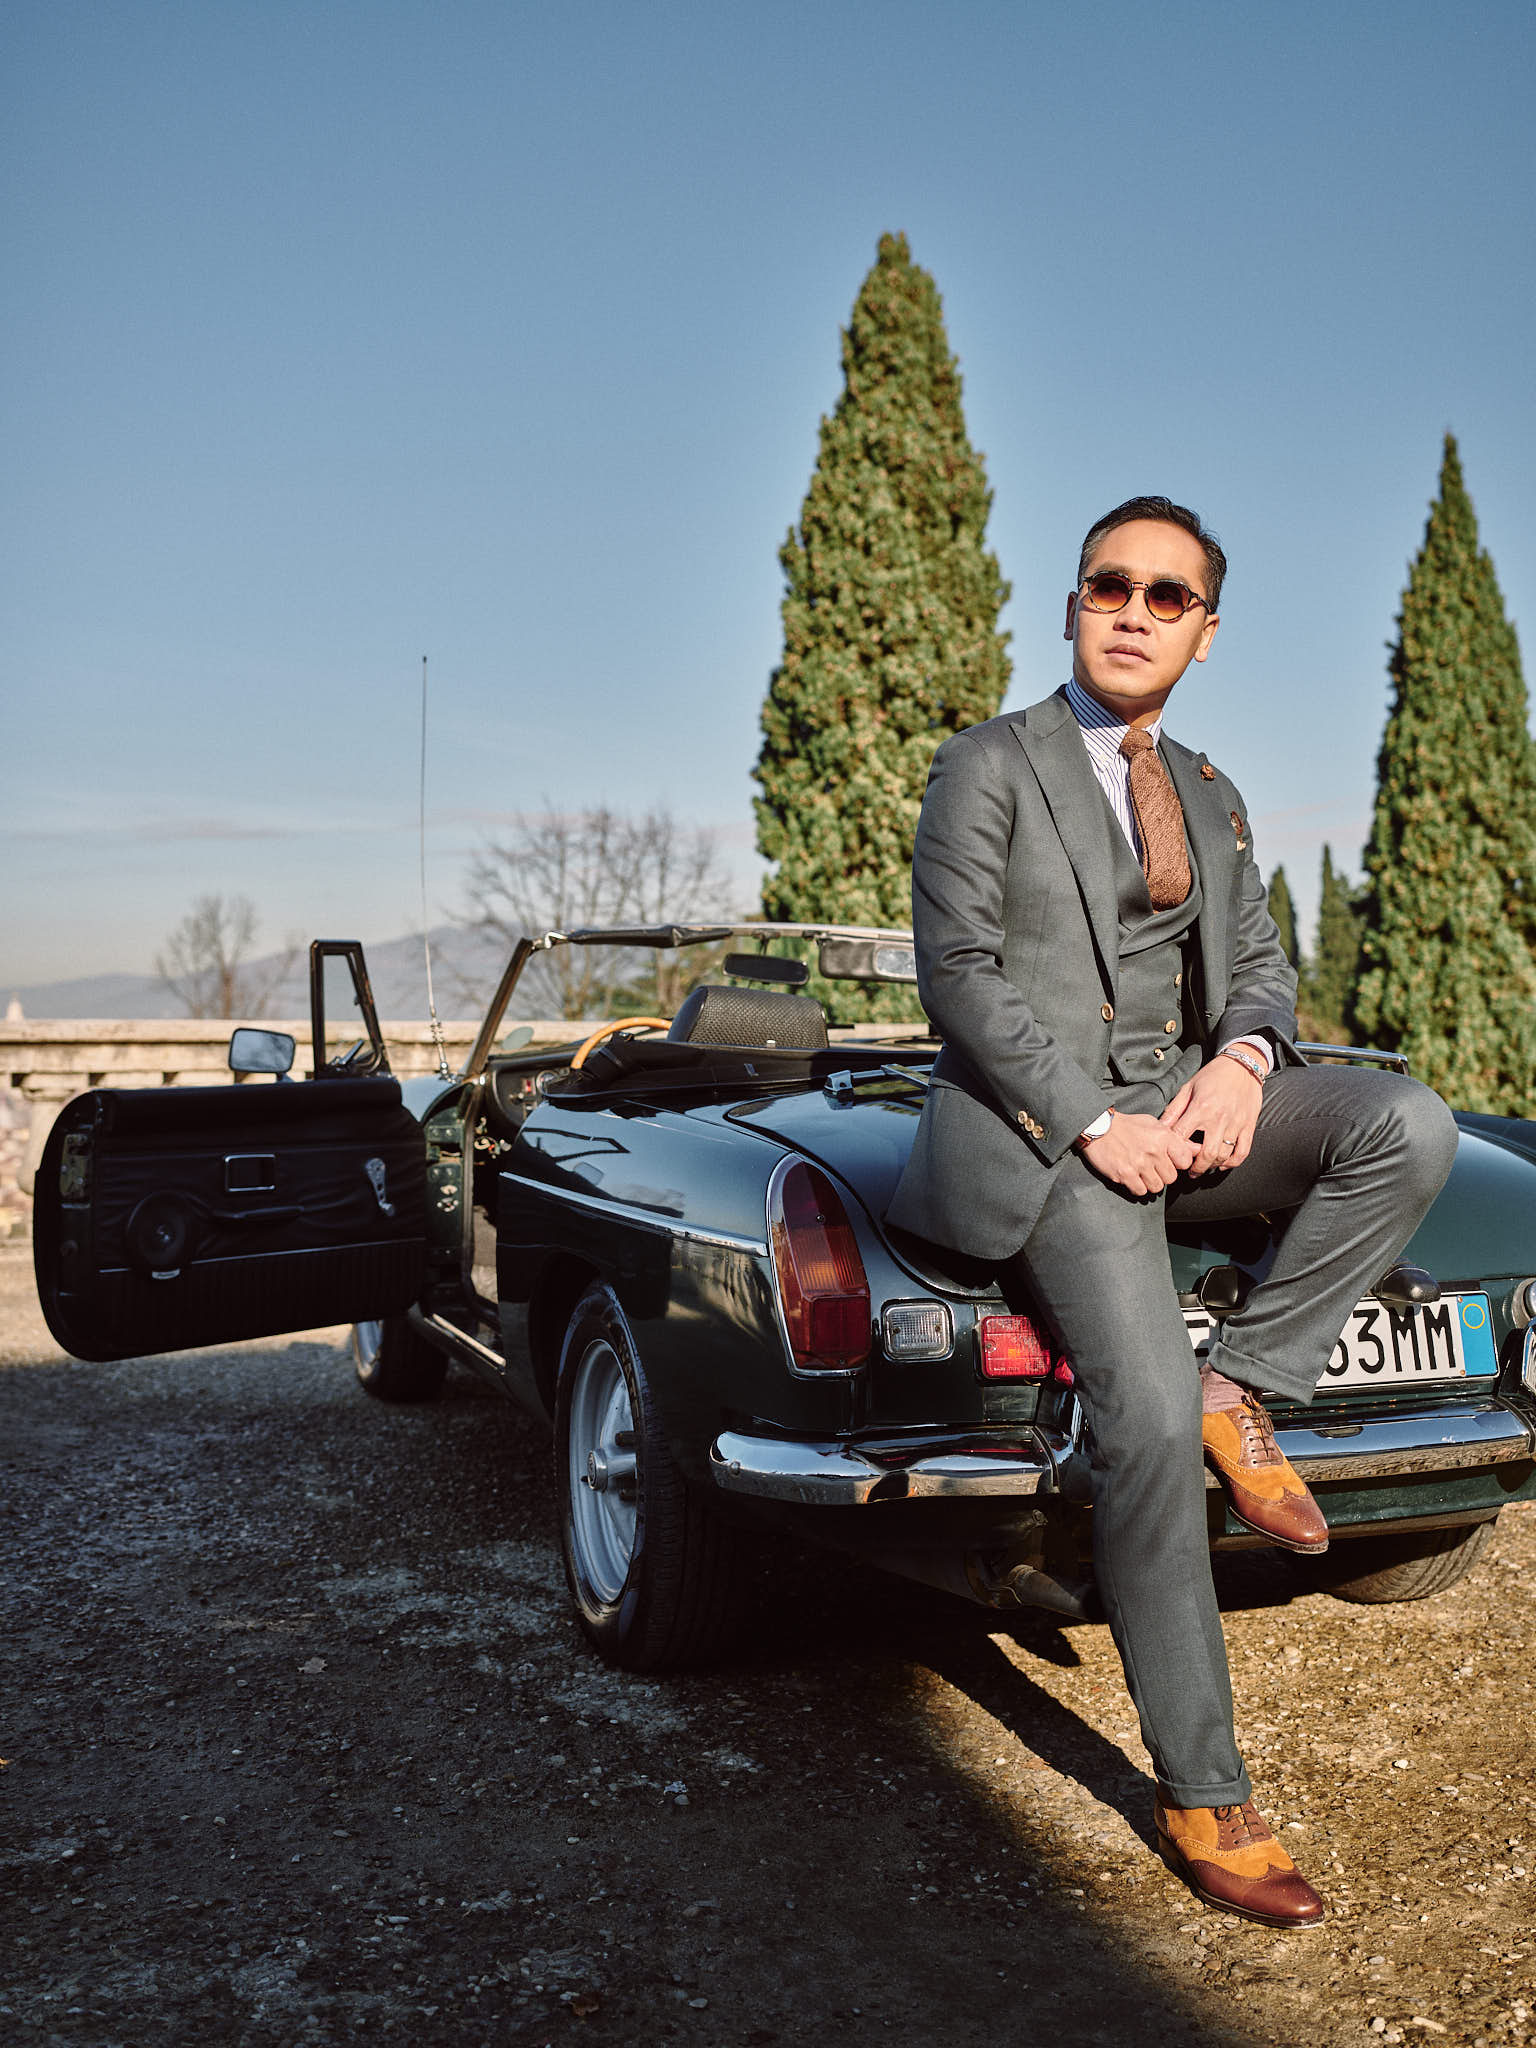 Blandin Delloye Florence Italy Street Fashion with MG historic car